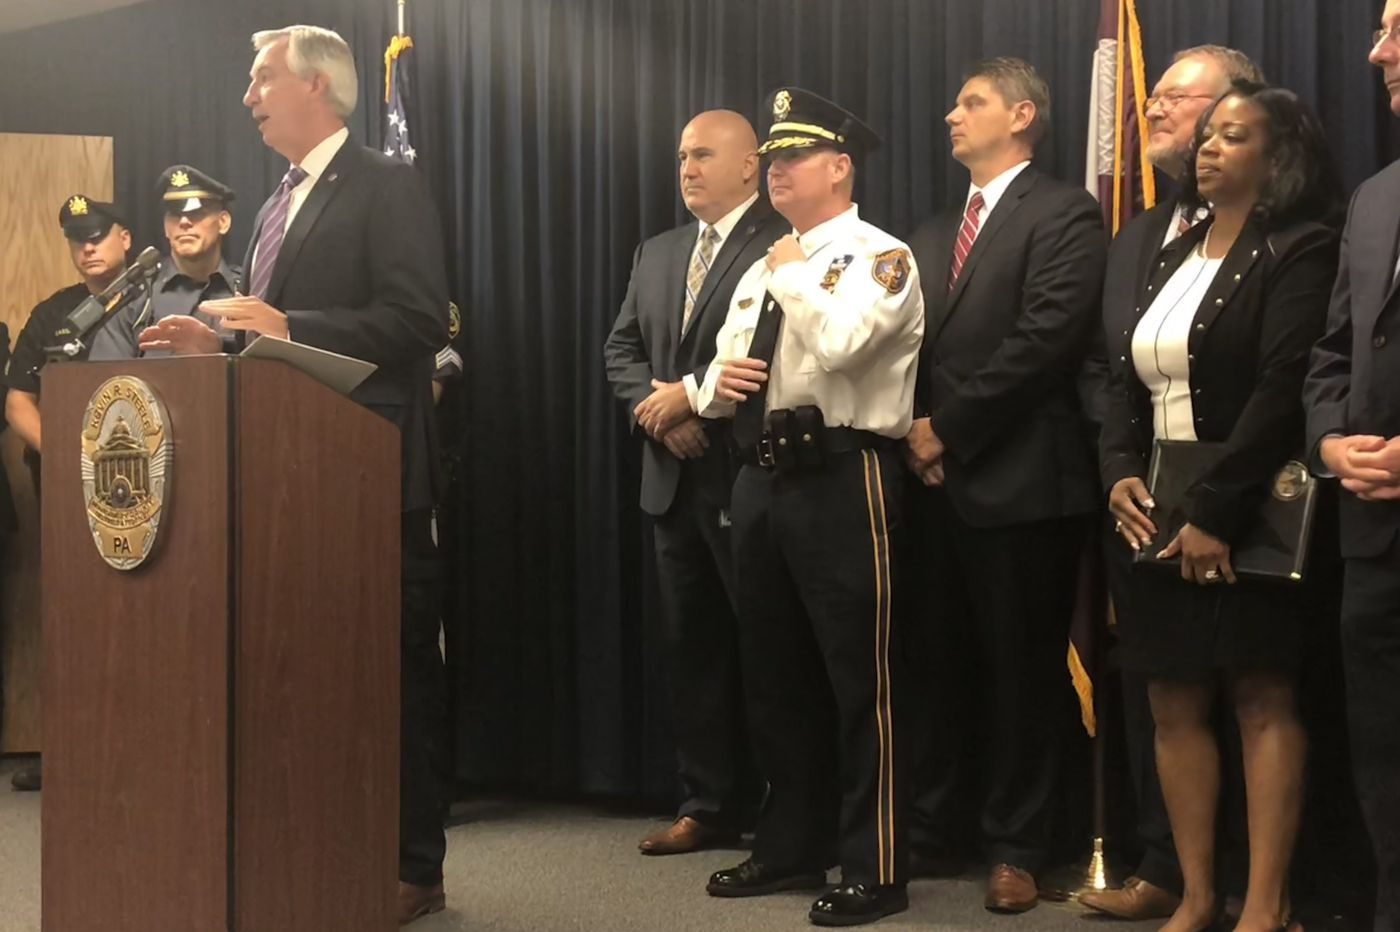 4 Montgomery County doctors charged with running 'pill mills' arrested